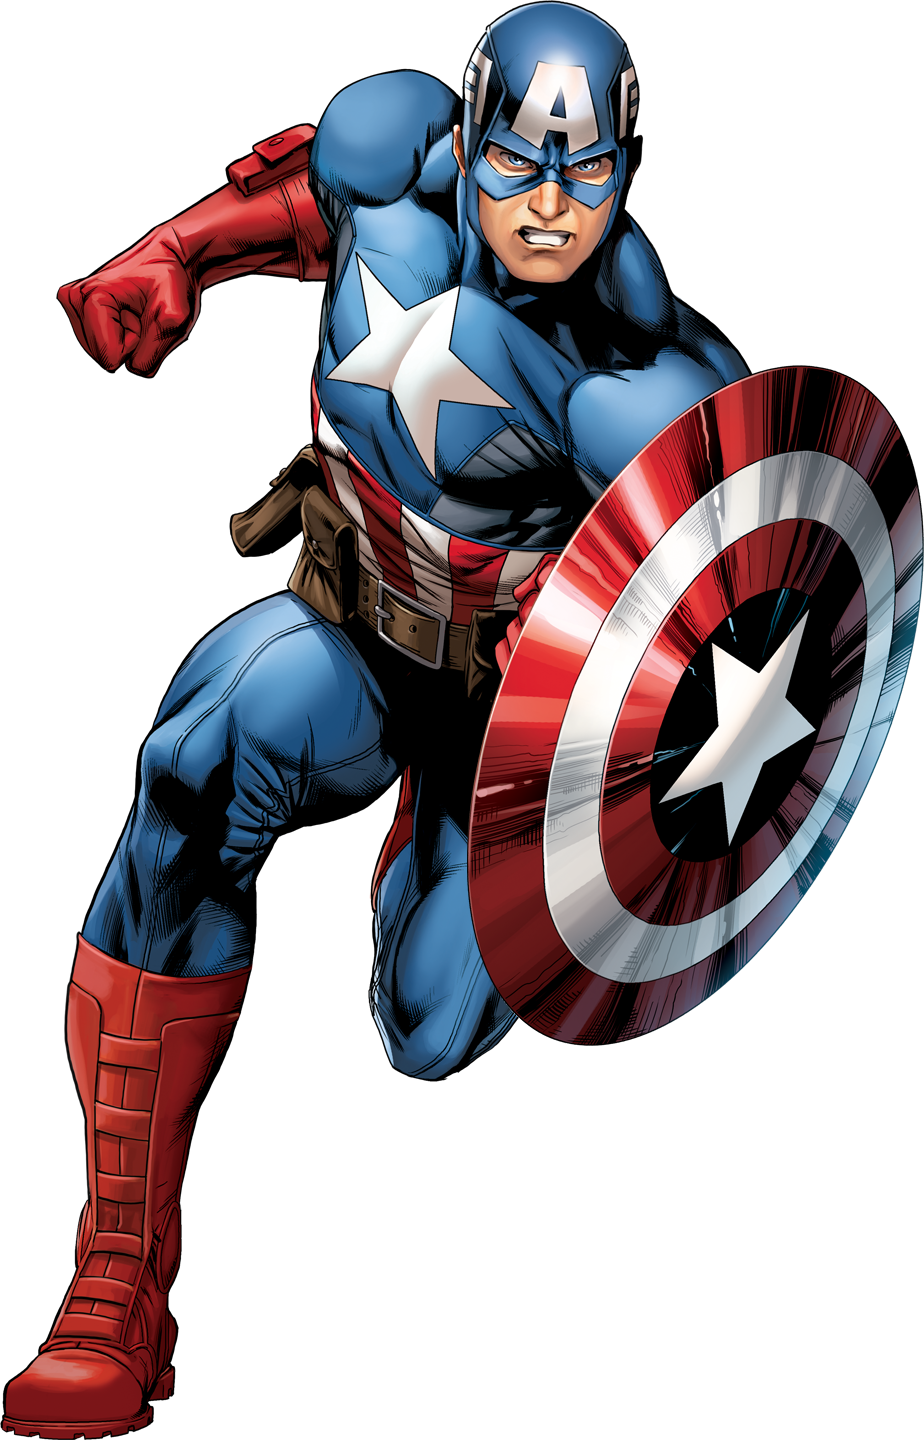 Http www signupuk co. Flash clipart character marvel